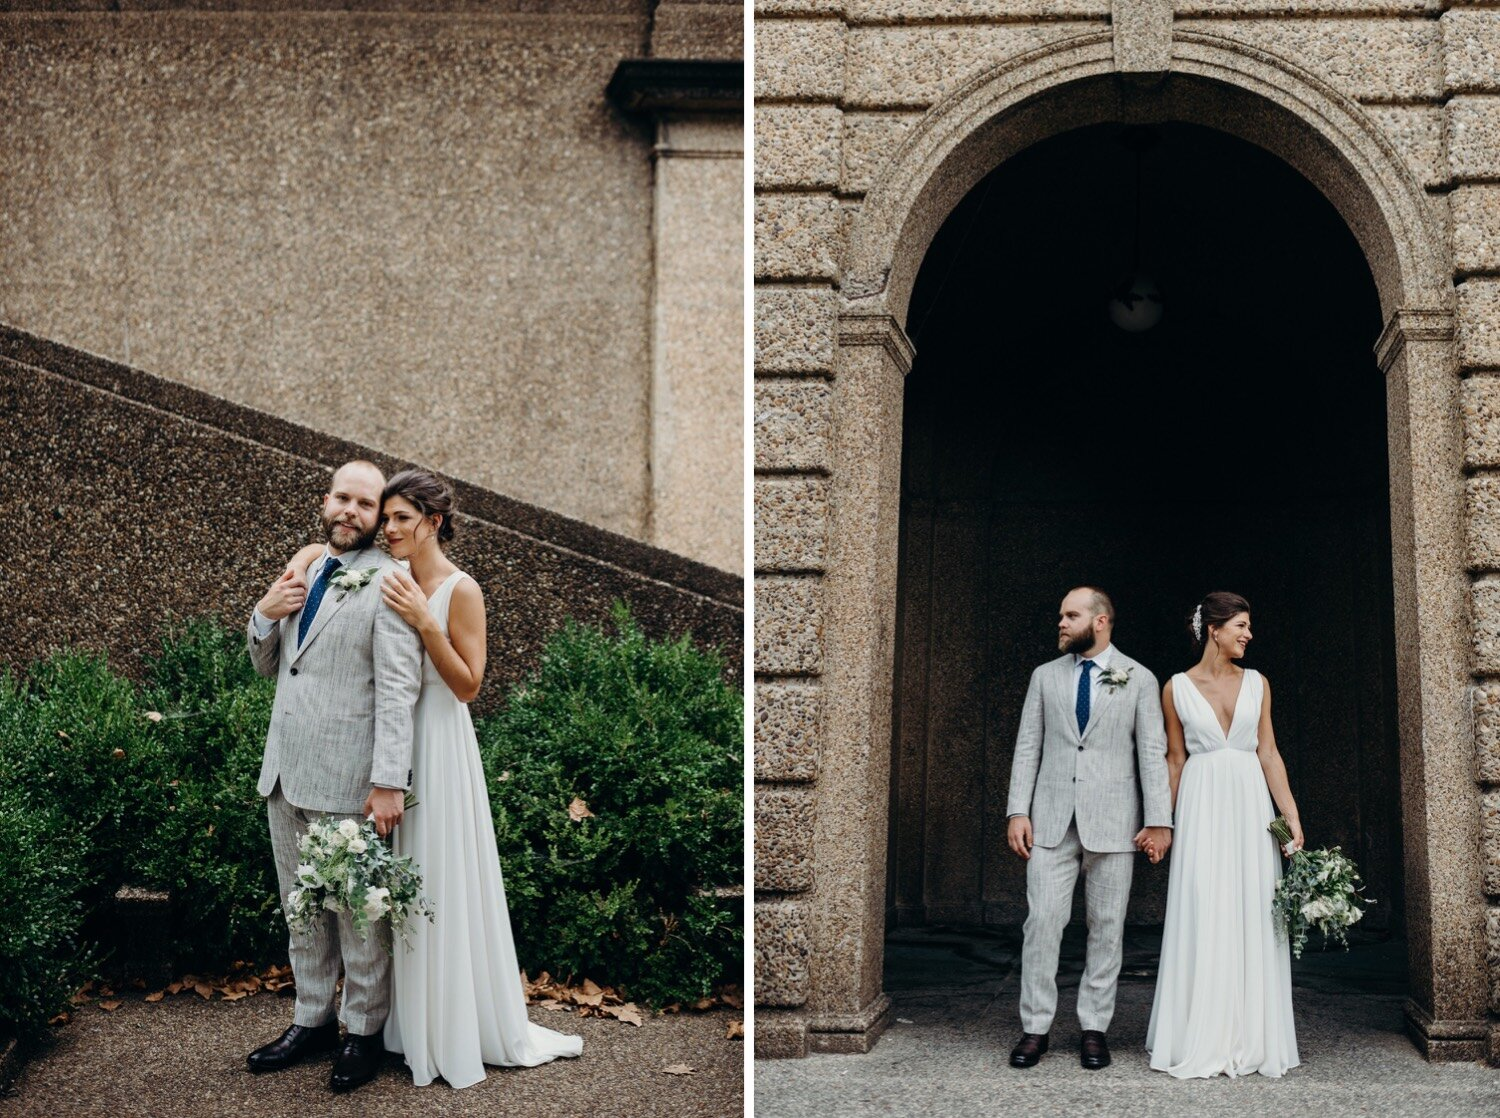 25_photographer_hill_meridian_park_urban_dc_washington_wedding.jpg